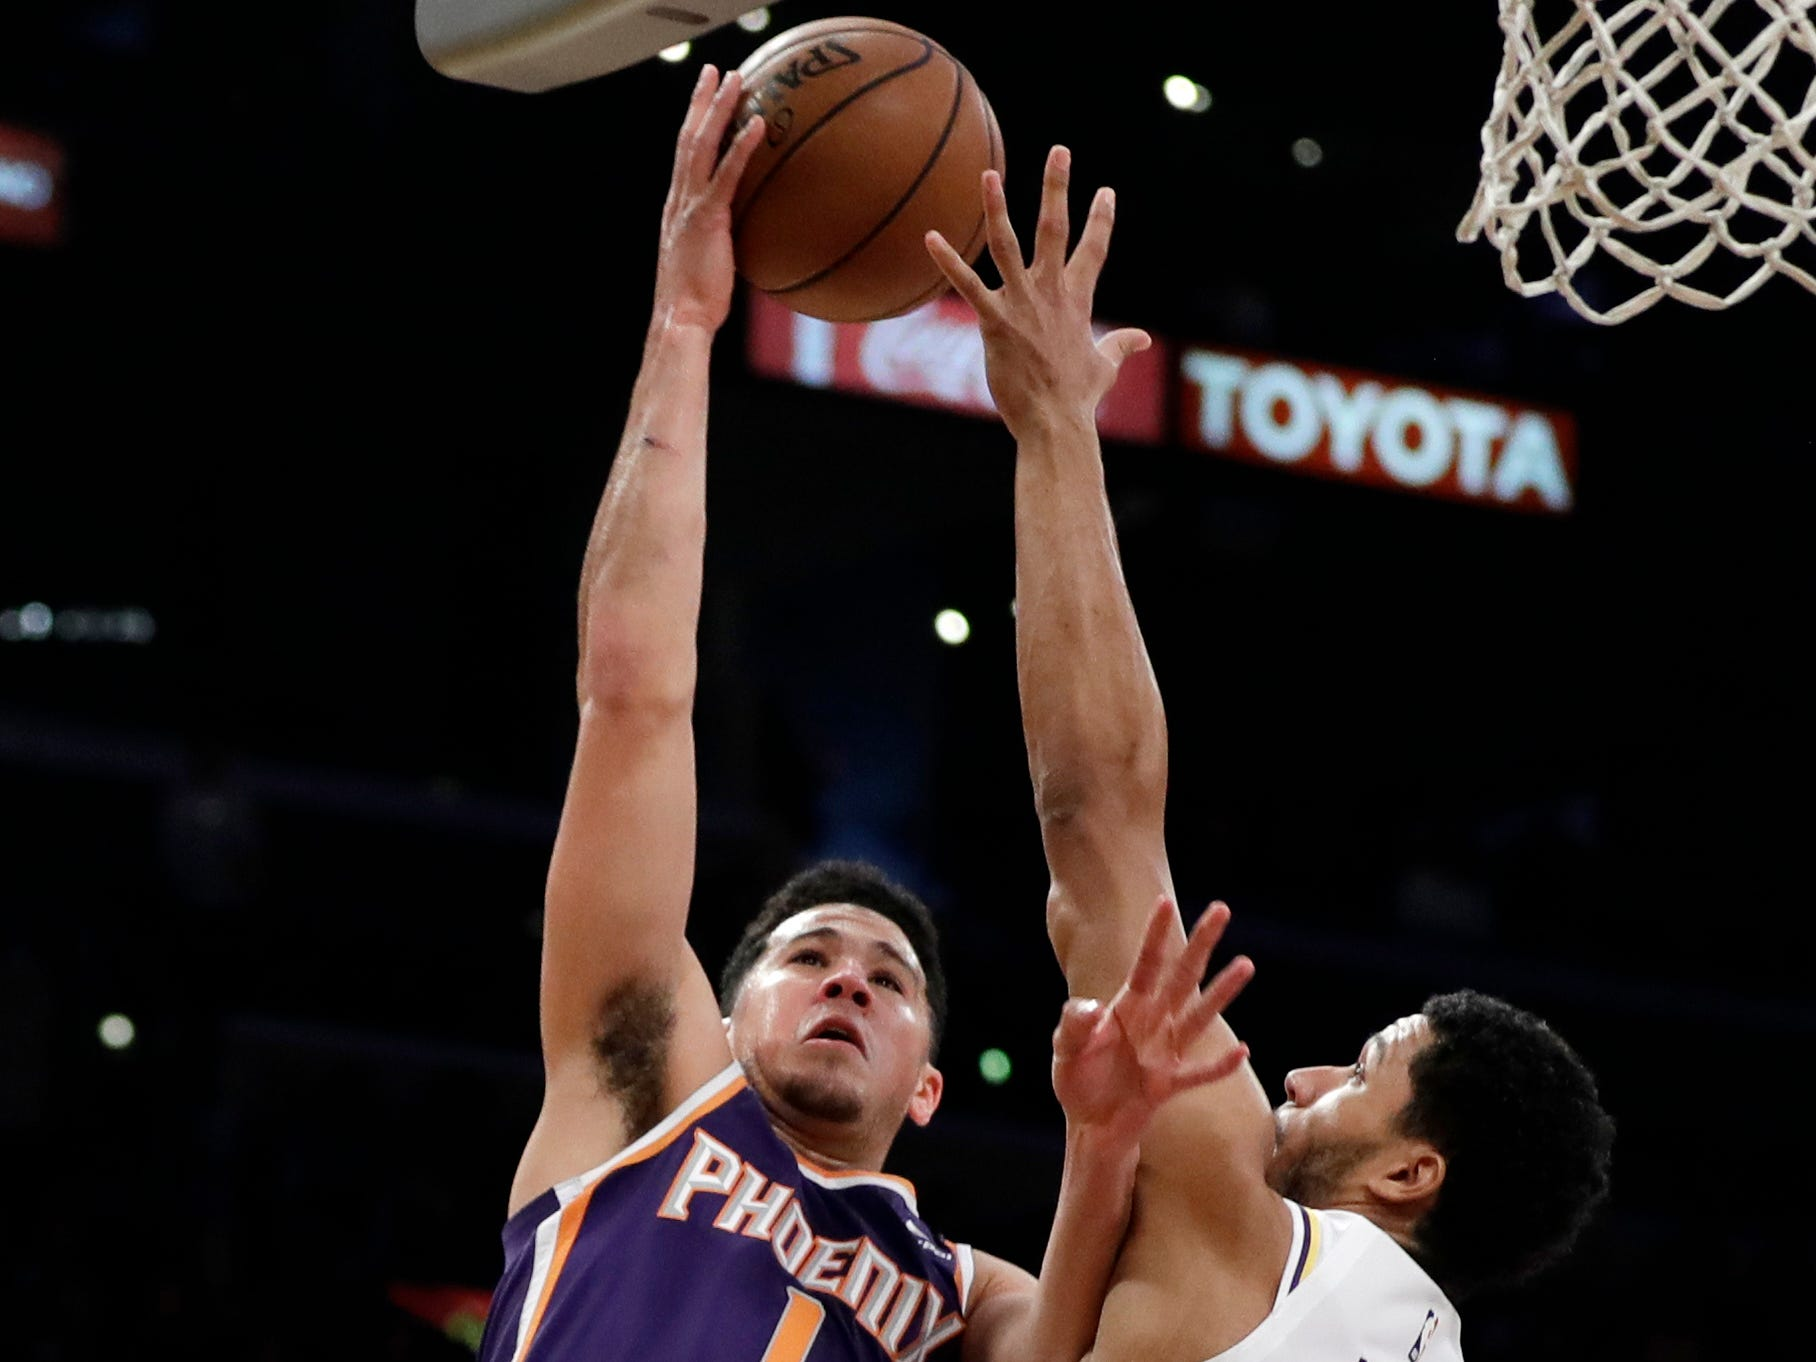 Phoenix Suns' Devin Booker (1) shoots over Los Angeles Lakers' Josh Hart (3) during the first half of an NBA basketball game Sunday, Dec. 2, 2018, in Los Angeles. (AP Photo/Marcio Jose Sanchez)